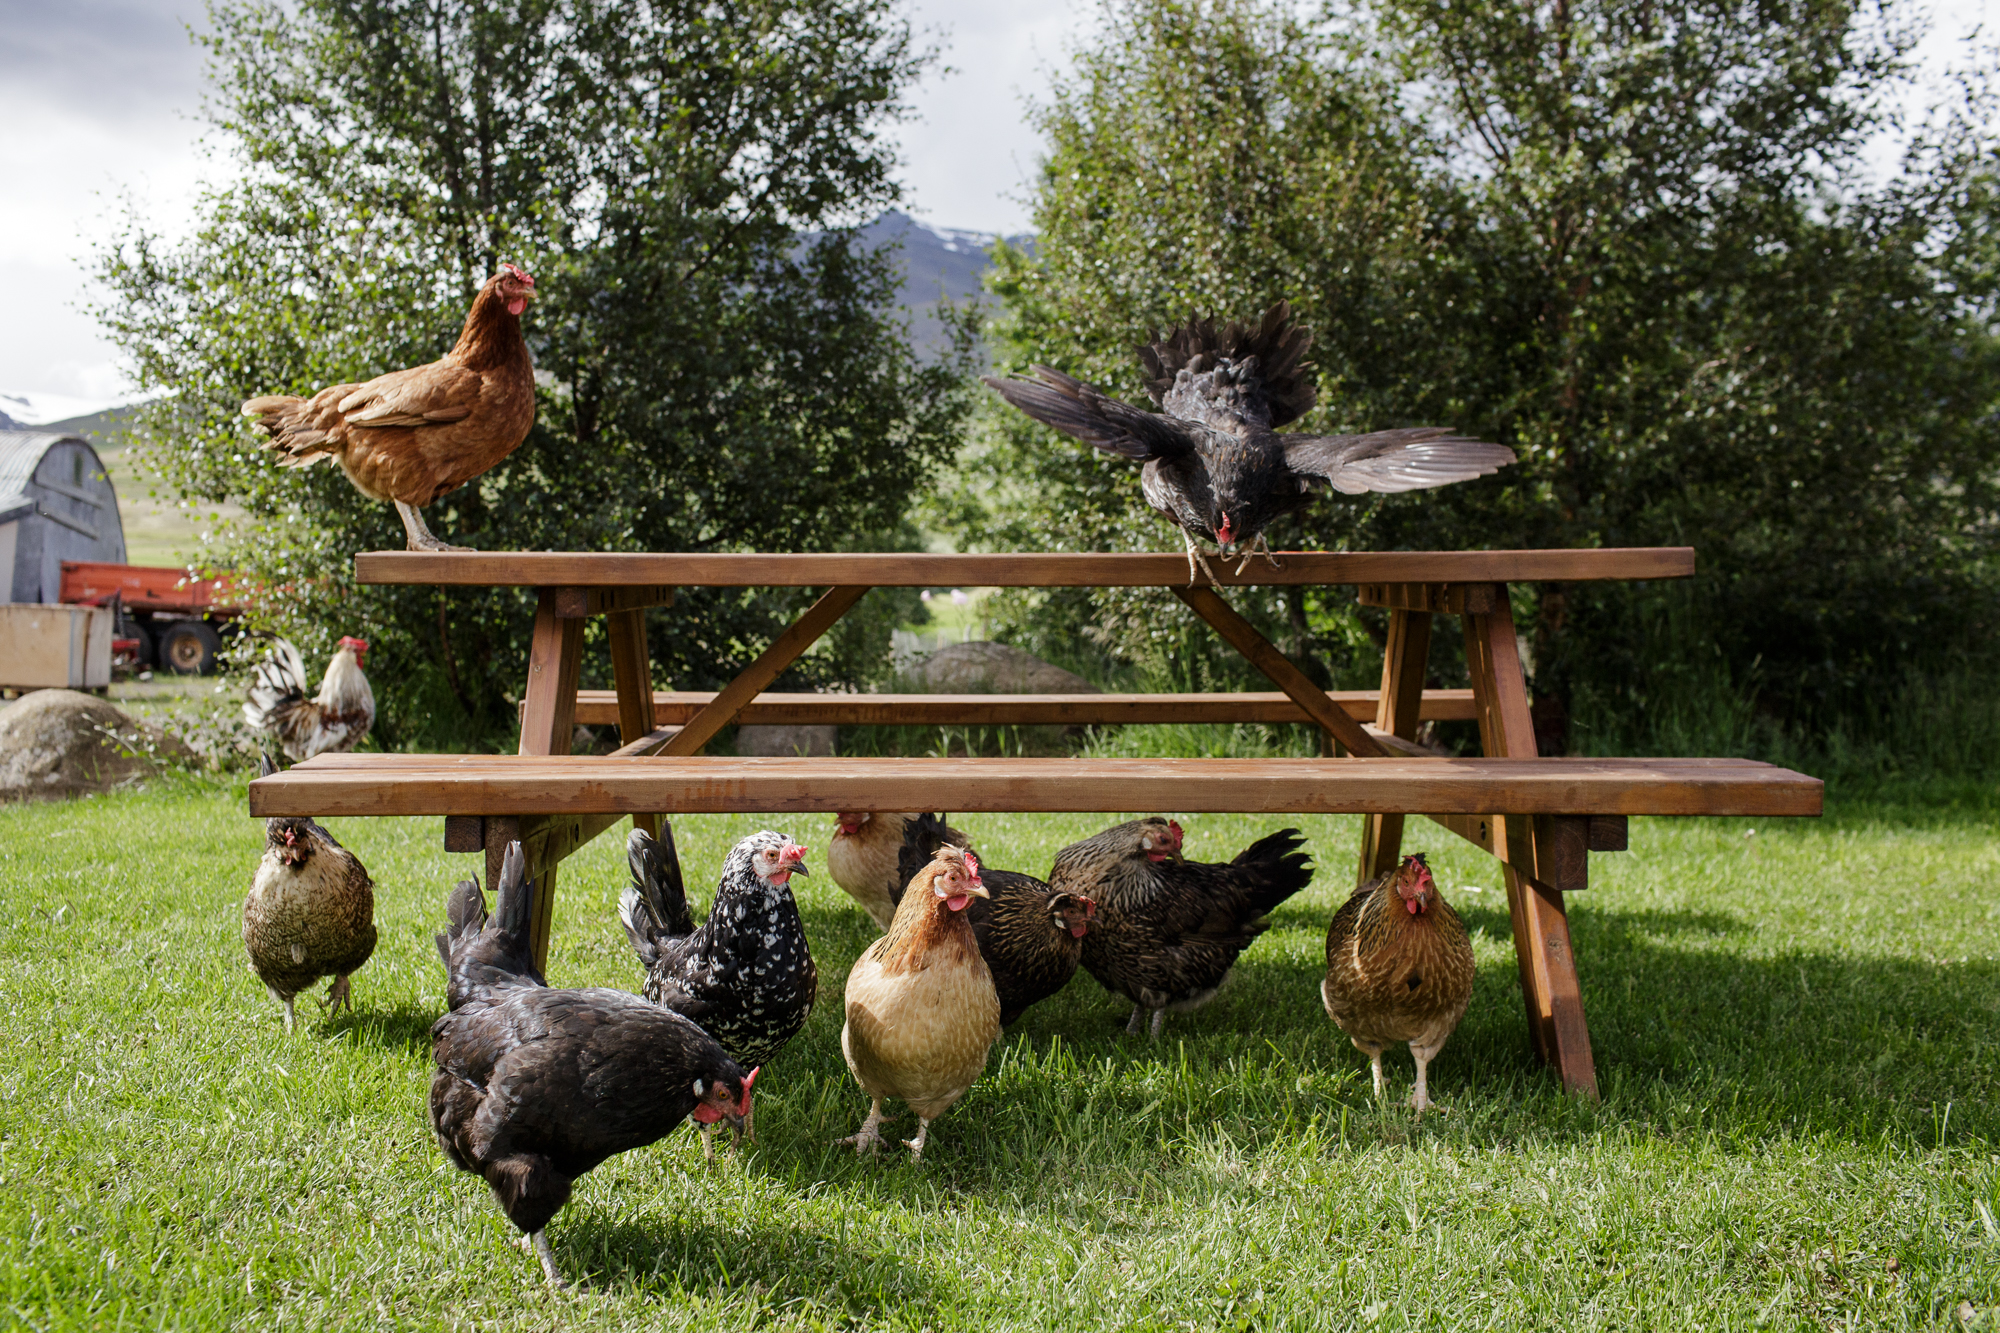 Chickens flock a picnic table outside an ice cream shop in Akureyri.